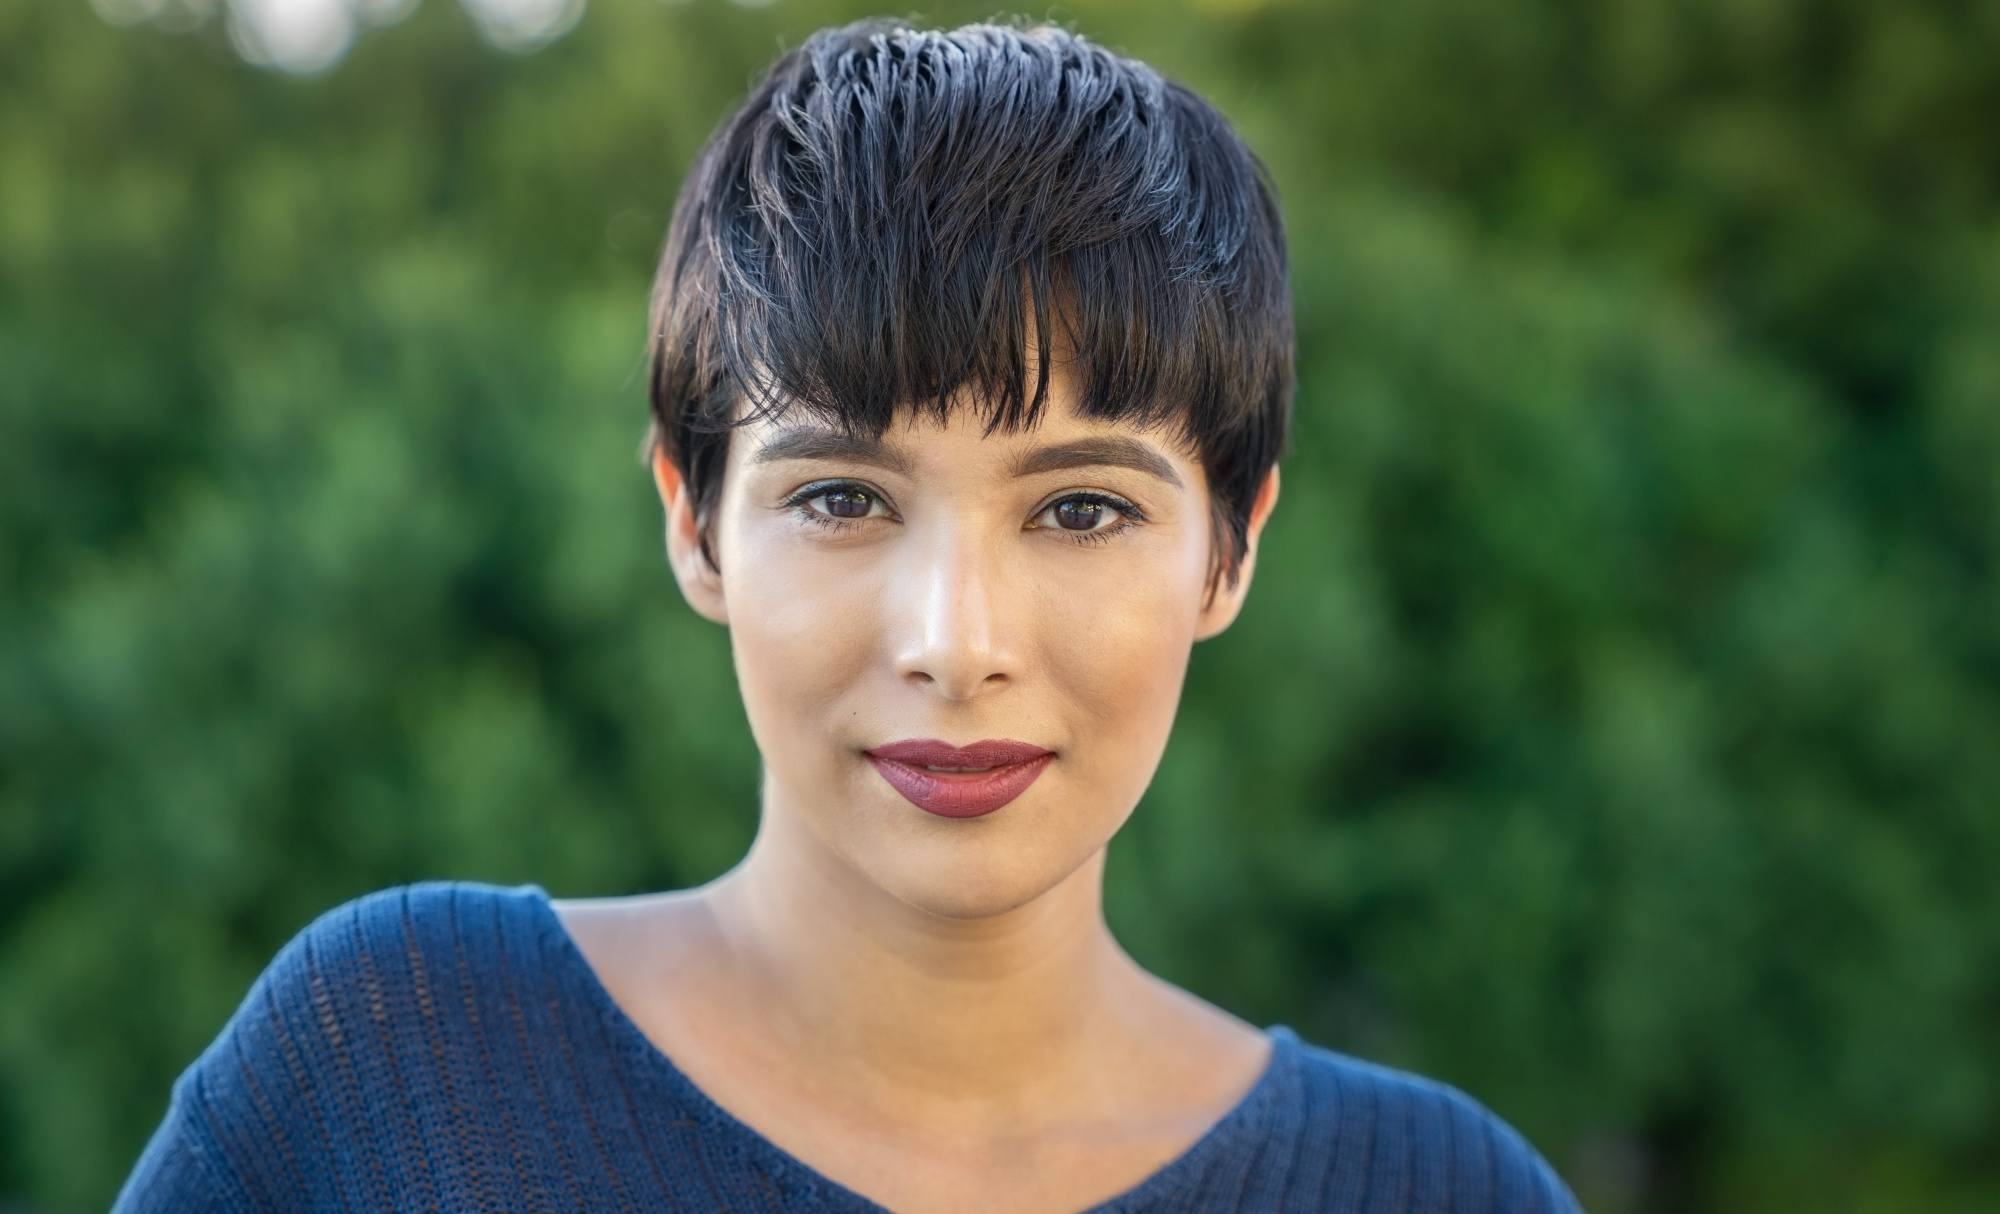 Short hairstyles for long faces: Closeup shot of a woman with short black pixie cut wearing a blue top outdoors